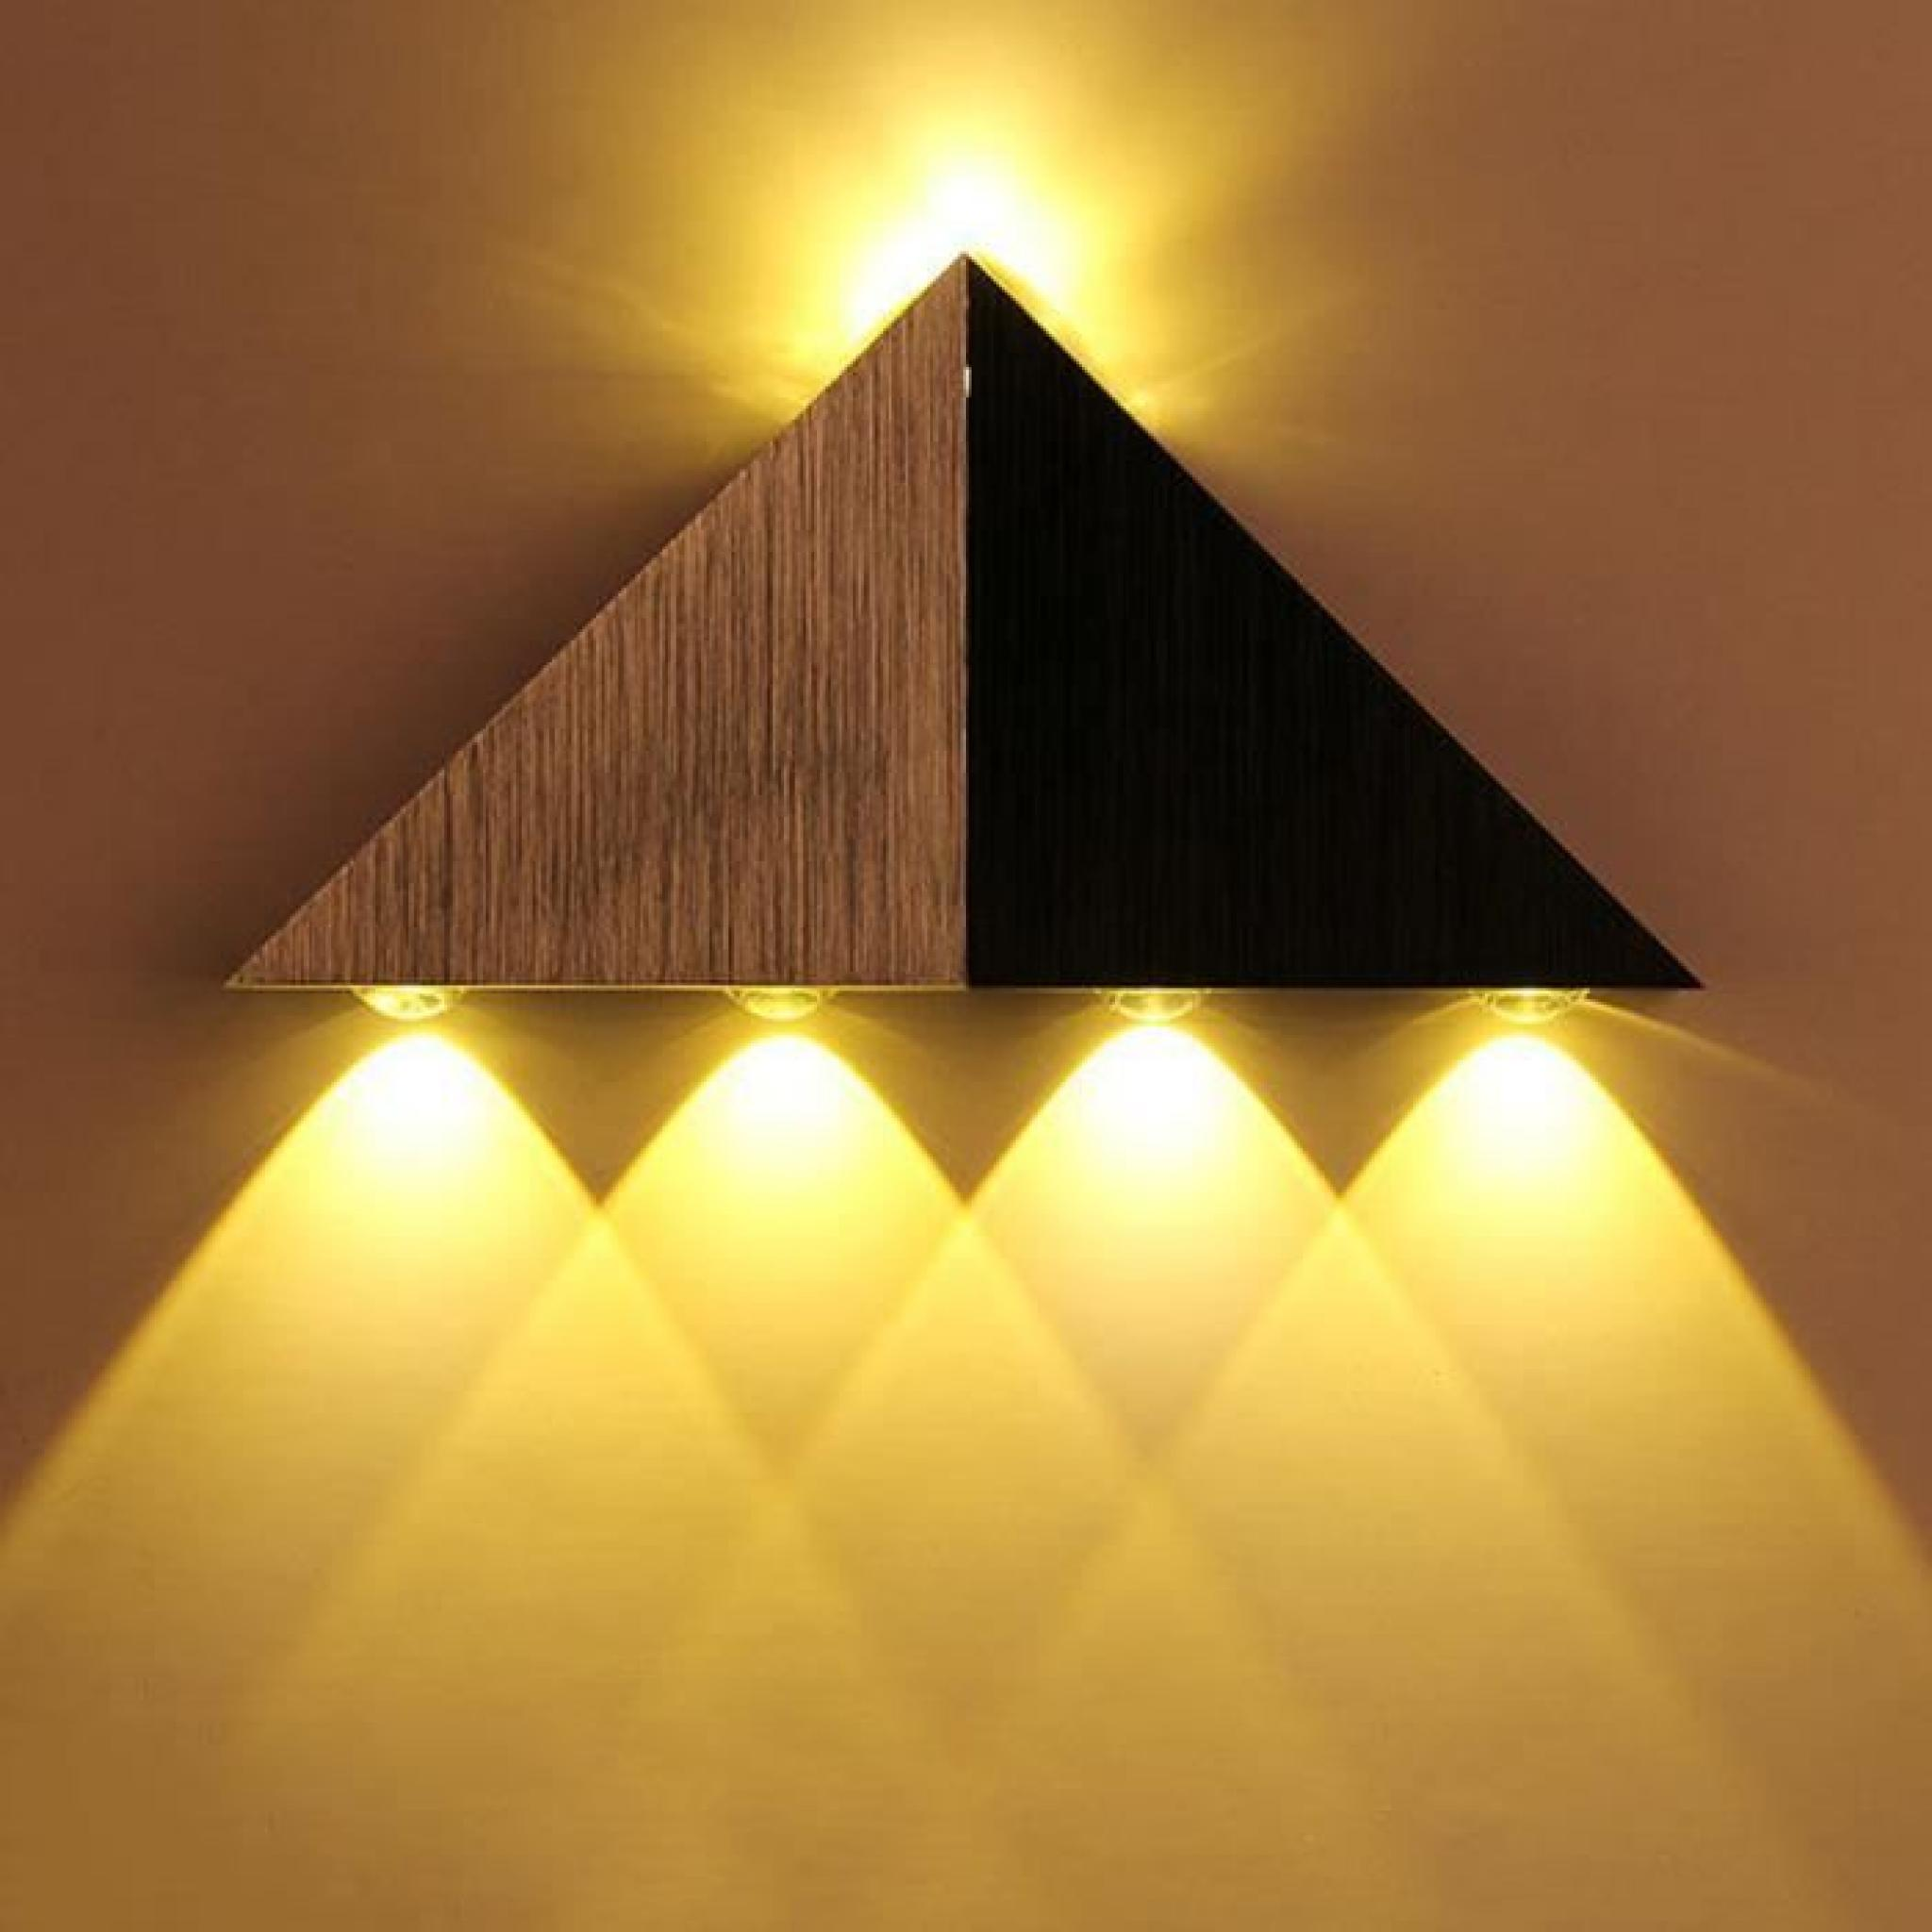 applique murale en aluminium 5w lampe led triangle de mur de led avec la lumi re de couleur. Black Bedroom Furniture Sets. Home Design Ideas